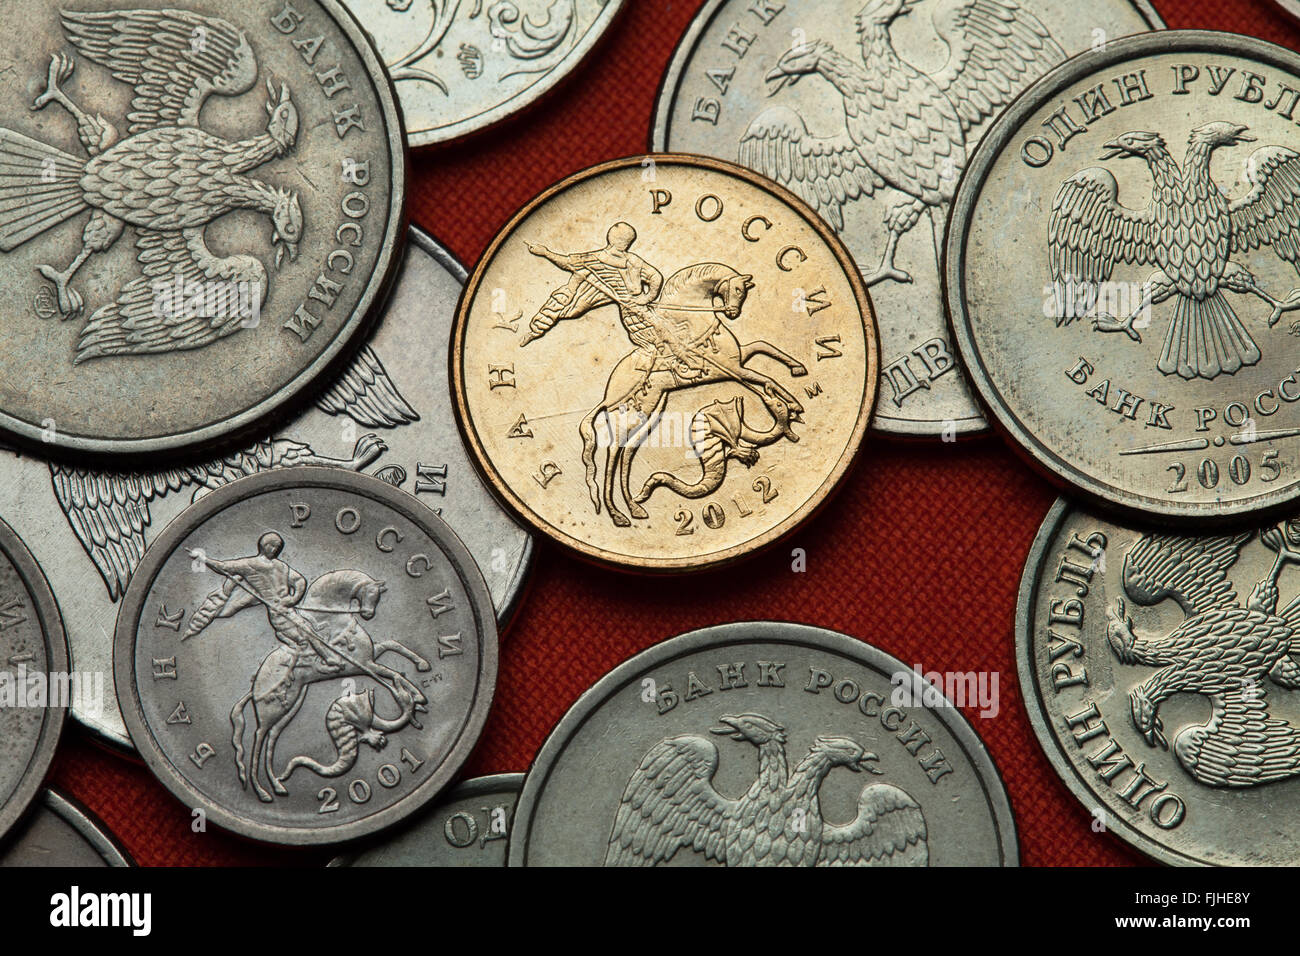 Coins of Russia. Saint George killing the Dragon depicted in the Russian kopek coins. - Stock Image